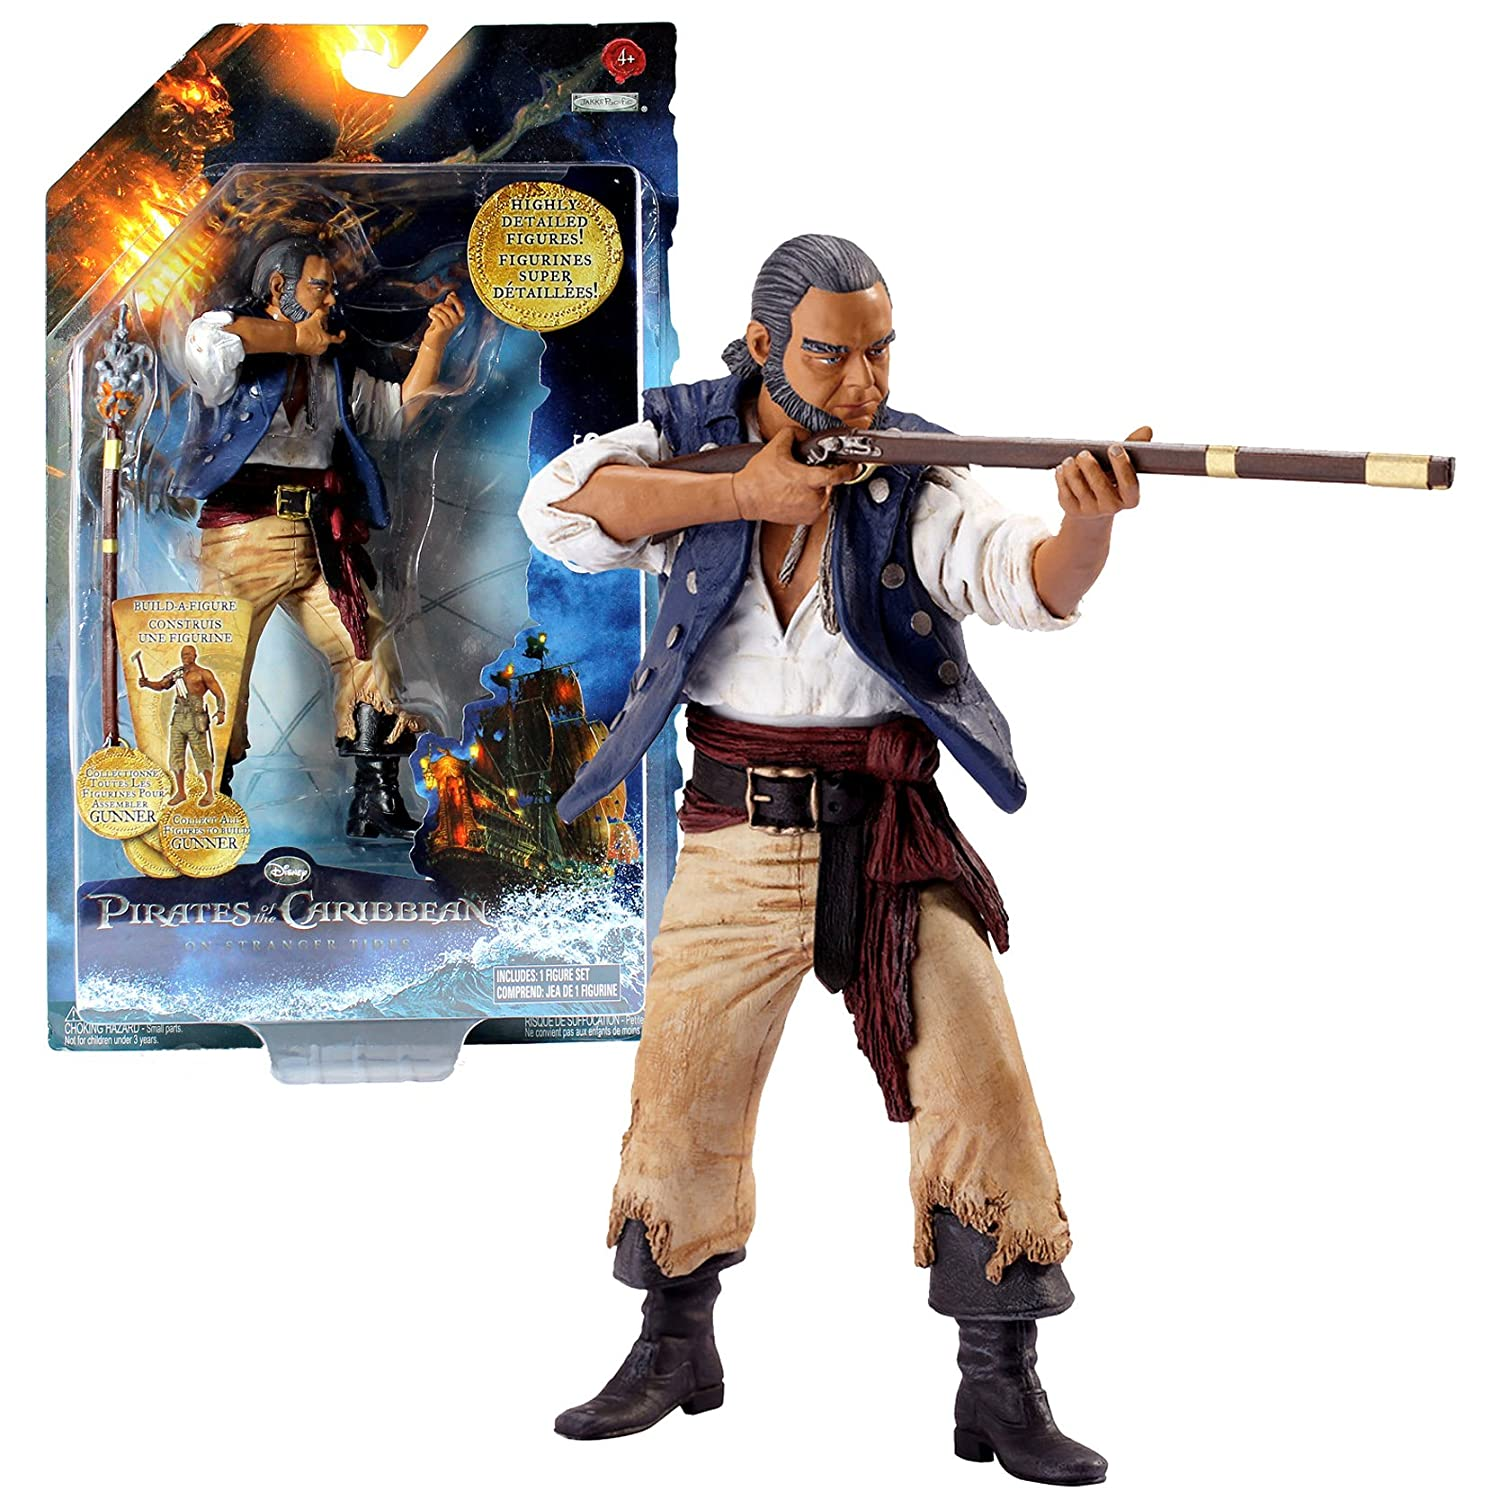 Pirates of the Caribbean On Stranger Tides Series Action Figure - Gibbs